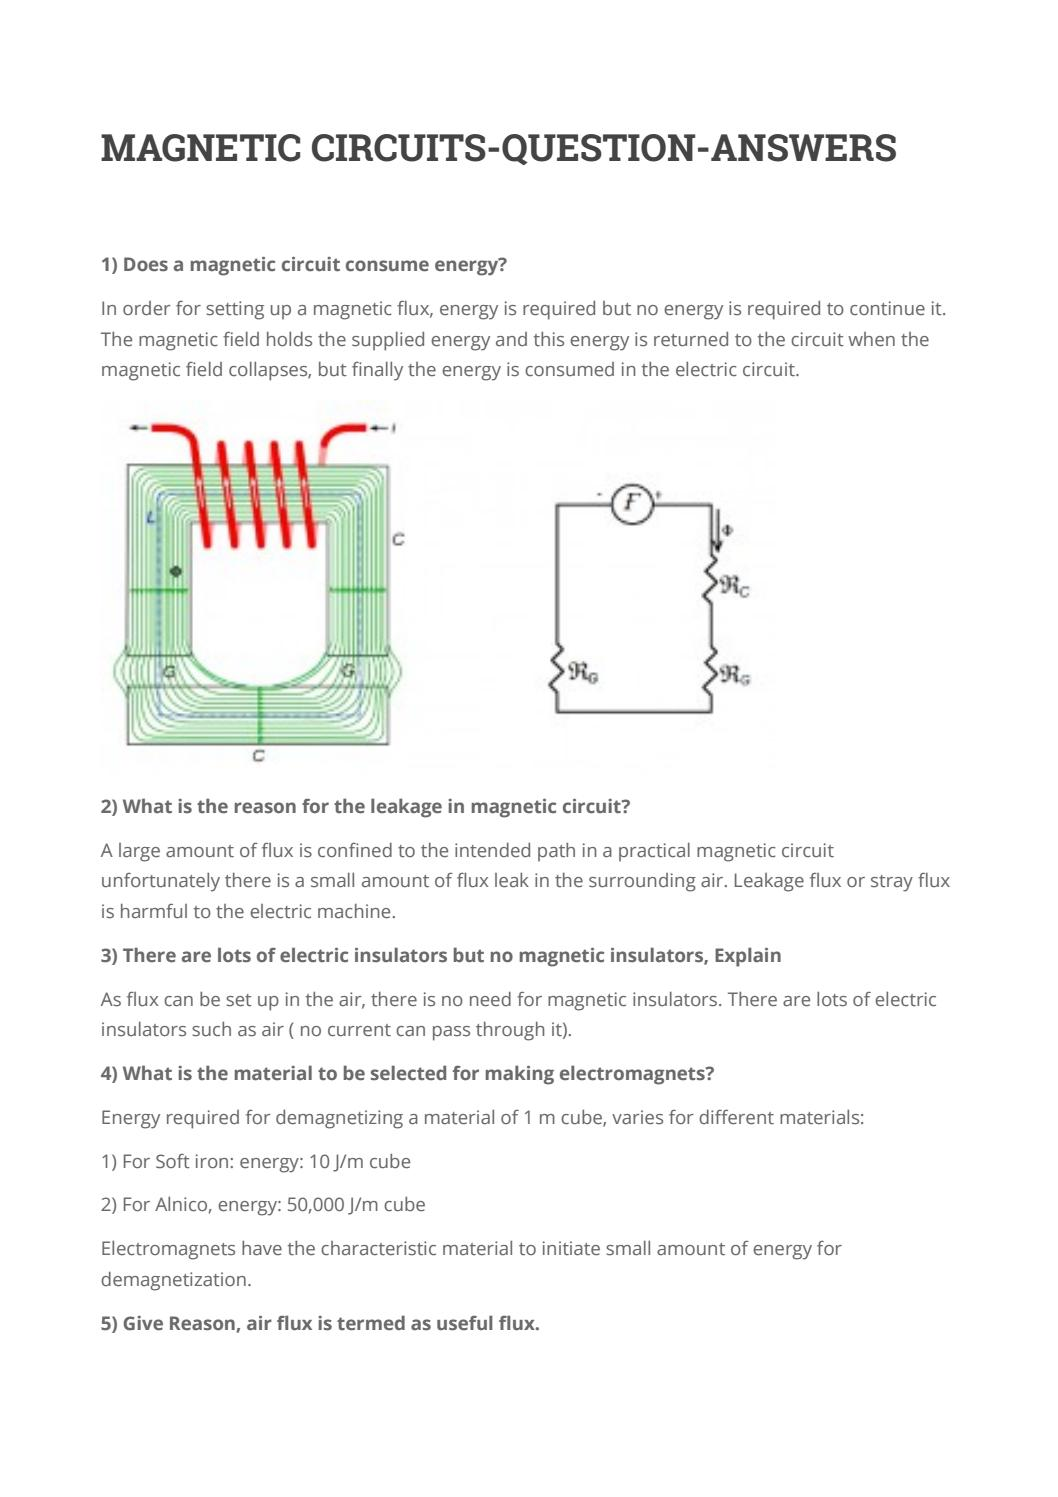 Magnetic circuits question answers by deepika - issuu